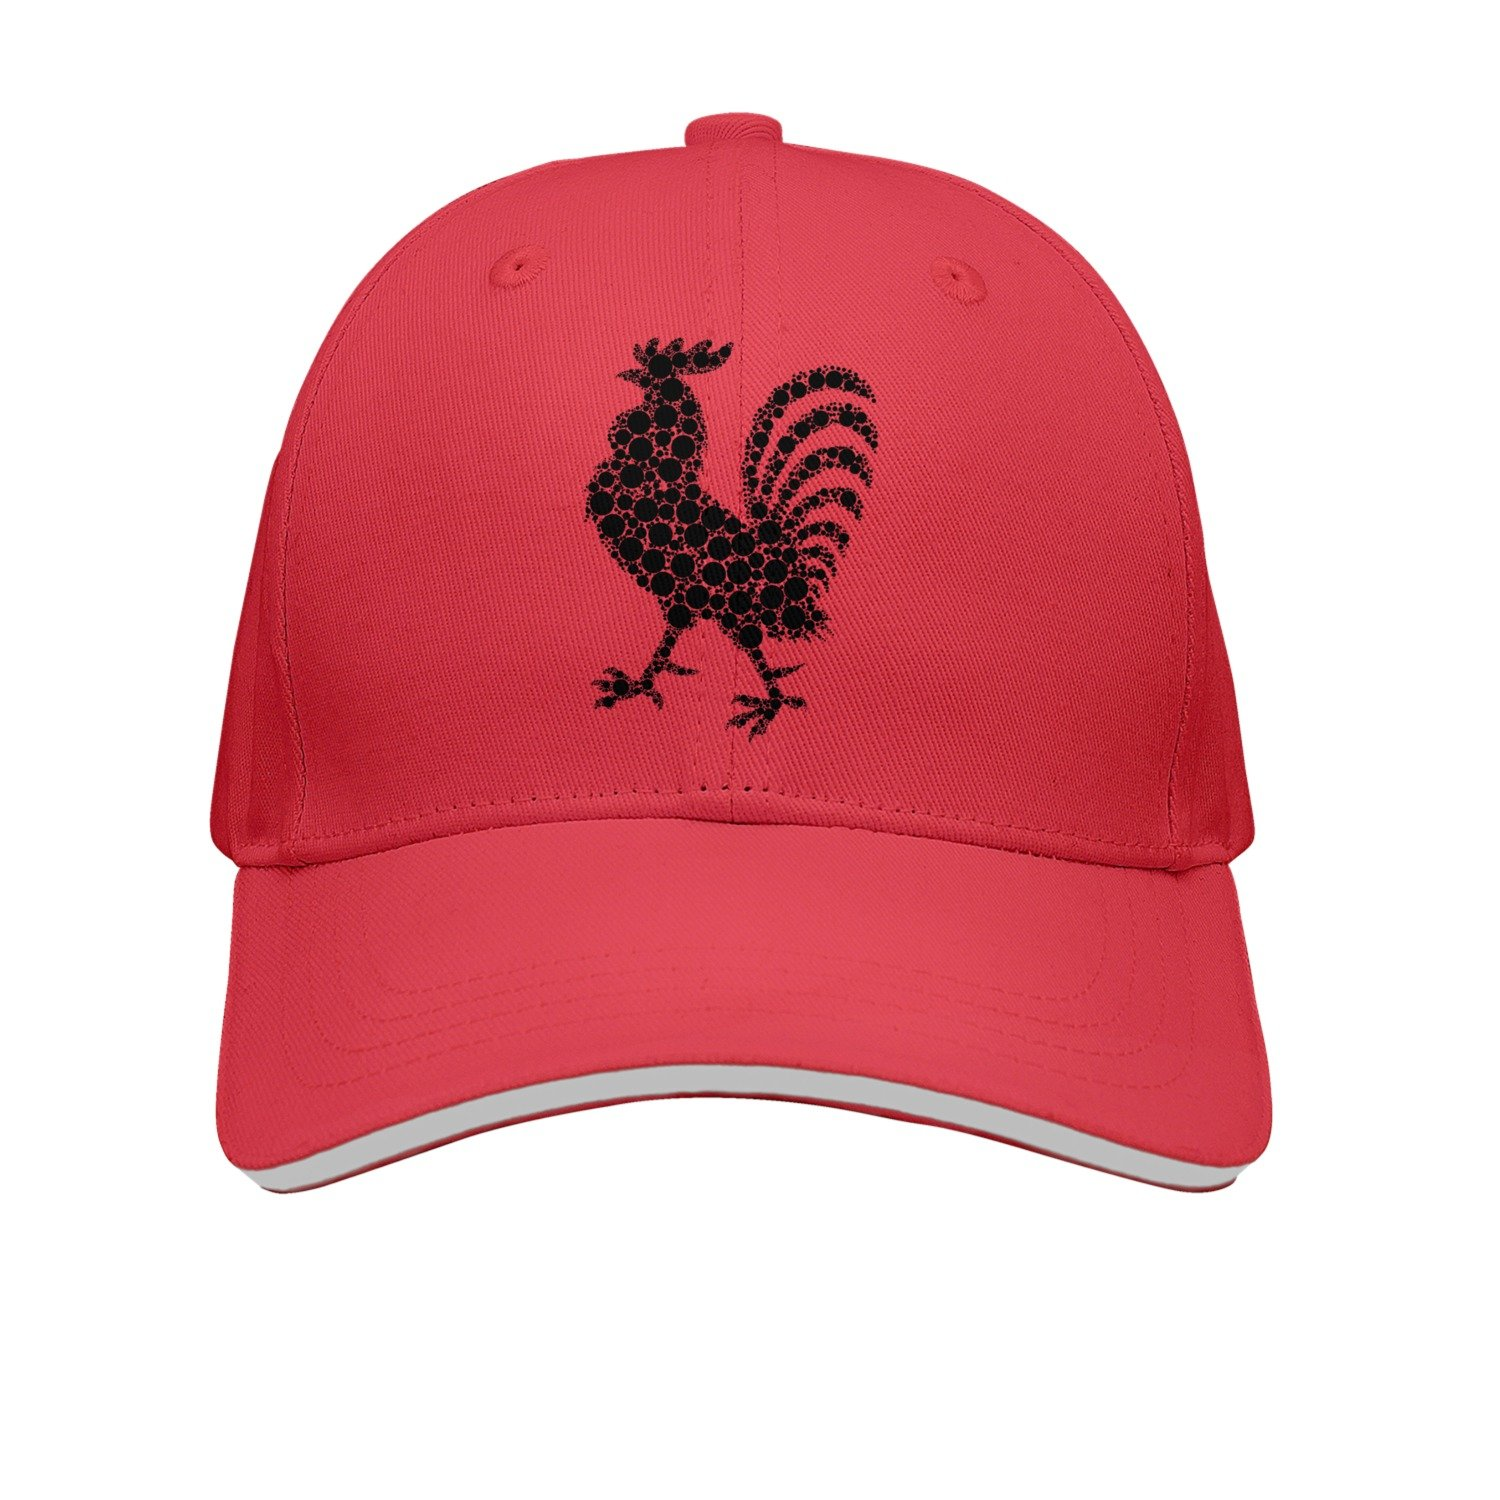 OKSDLK Black Rooster Snapback Hats Cool Hat at Amazon Men s Clothing store  65ad011fdd2